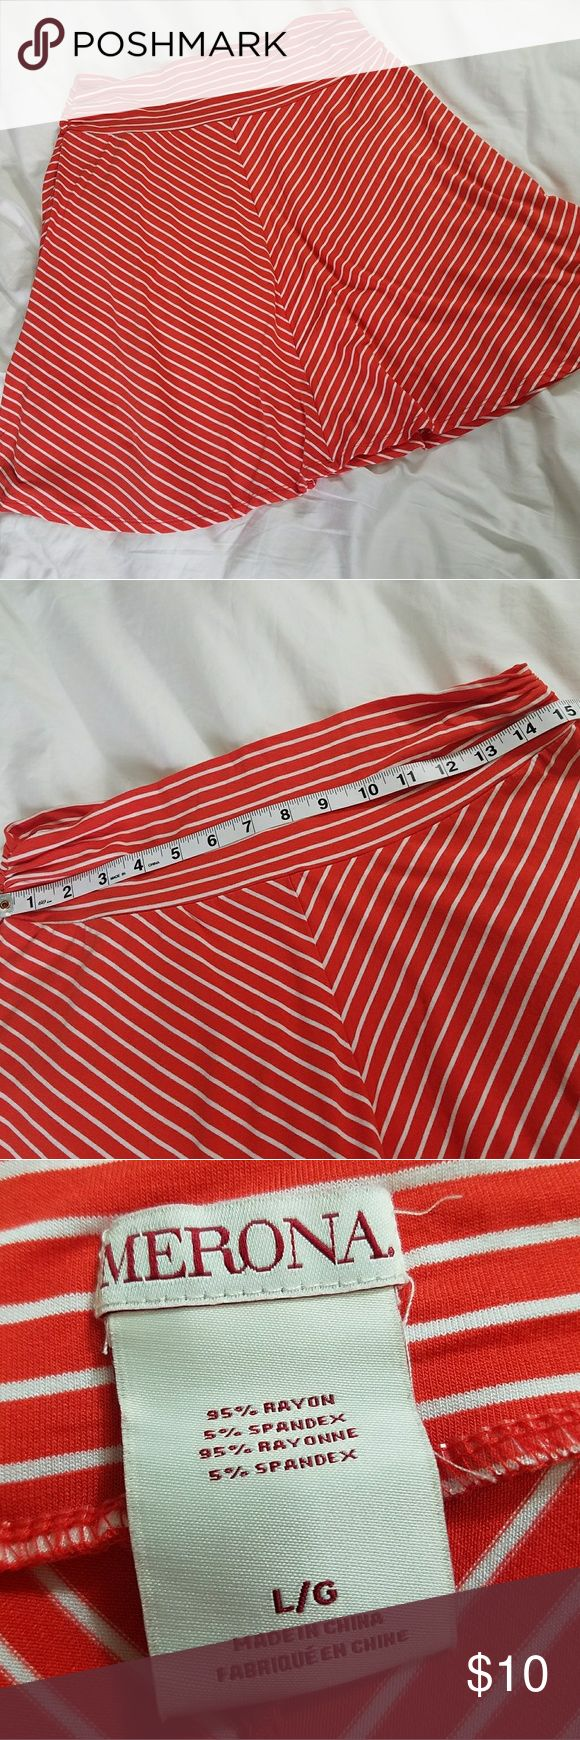 Merona Large Soft Chevron Striped Skirt Merona size LARGE womens soft jersey knit skirt with chevron stripes. Skirt is a reddish orange with white stripes. Wide waistband with ruched detail.   Fabric content: 95% rayon, 5% spandex.  Excellent condition with no signs of wear. See photos for measurements and details. Merona Skirts Circle & Skater